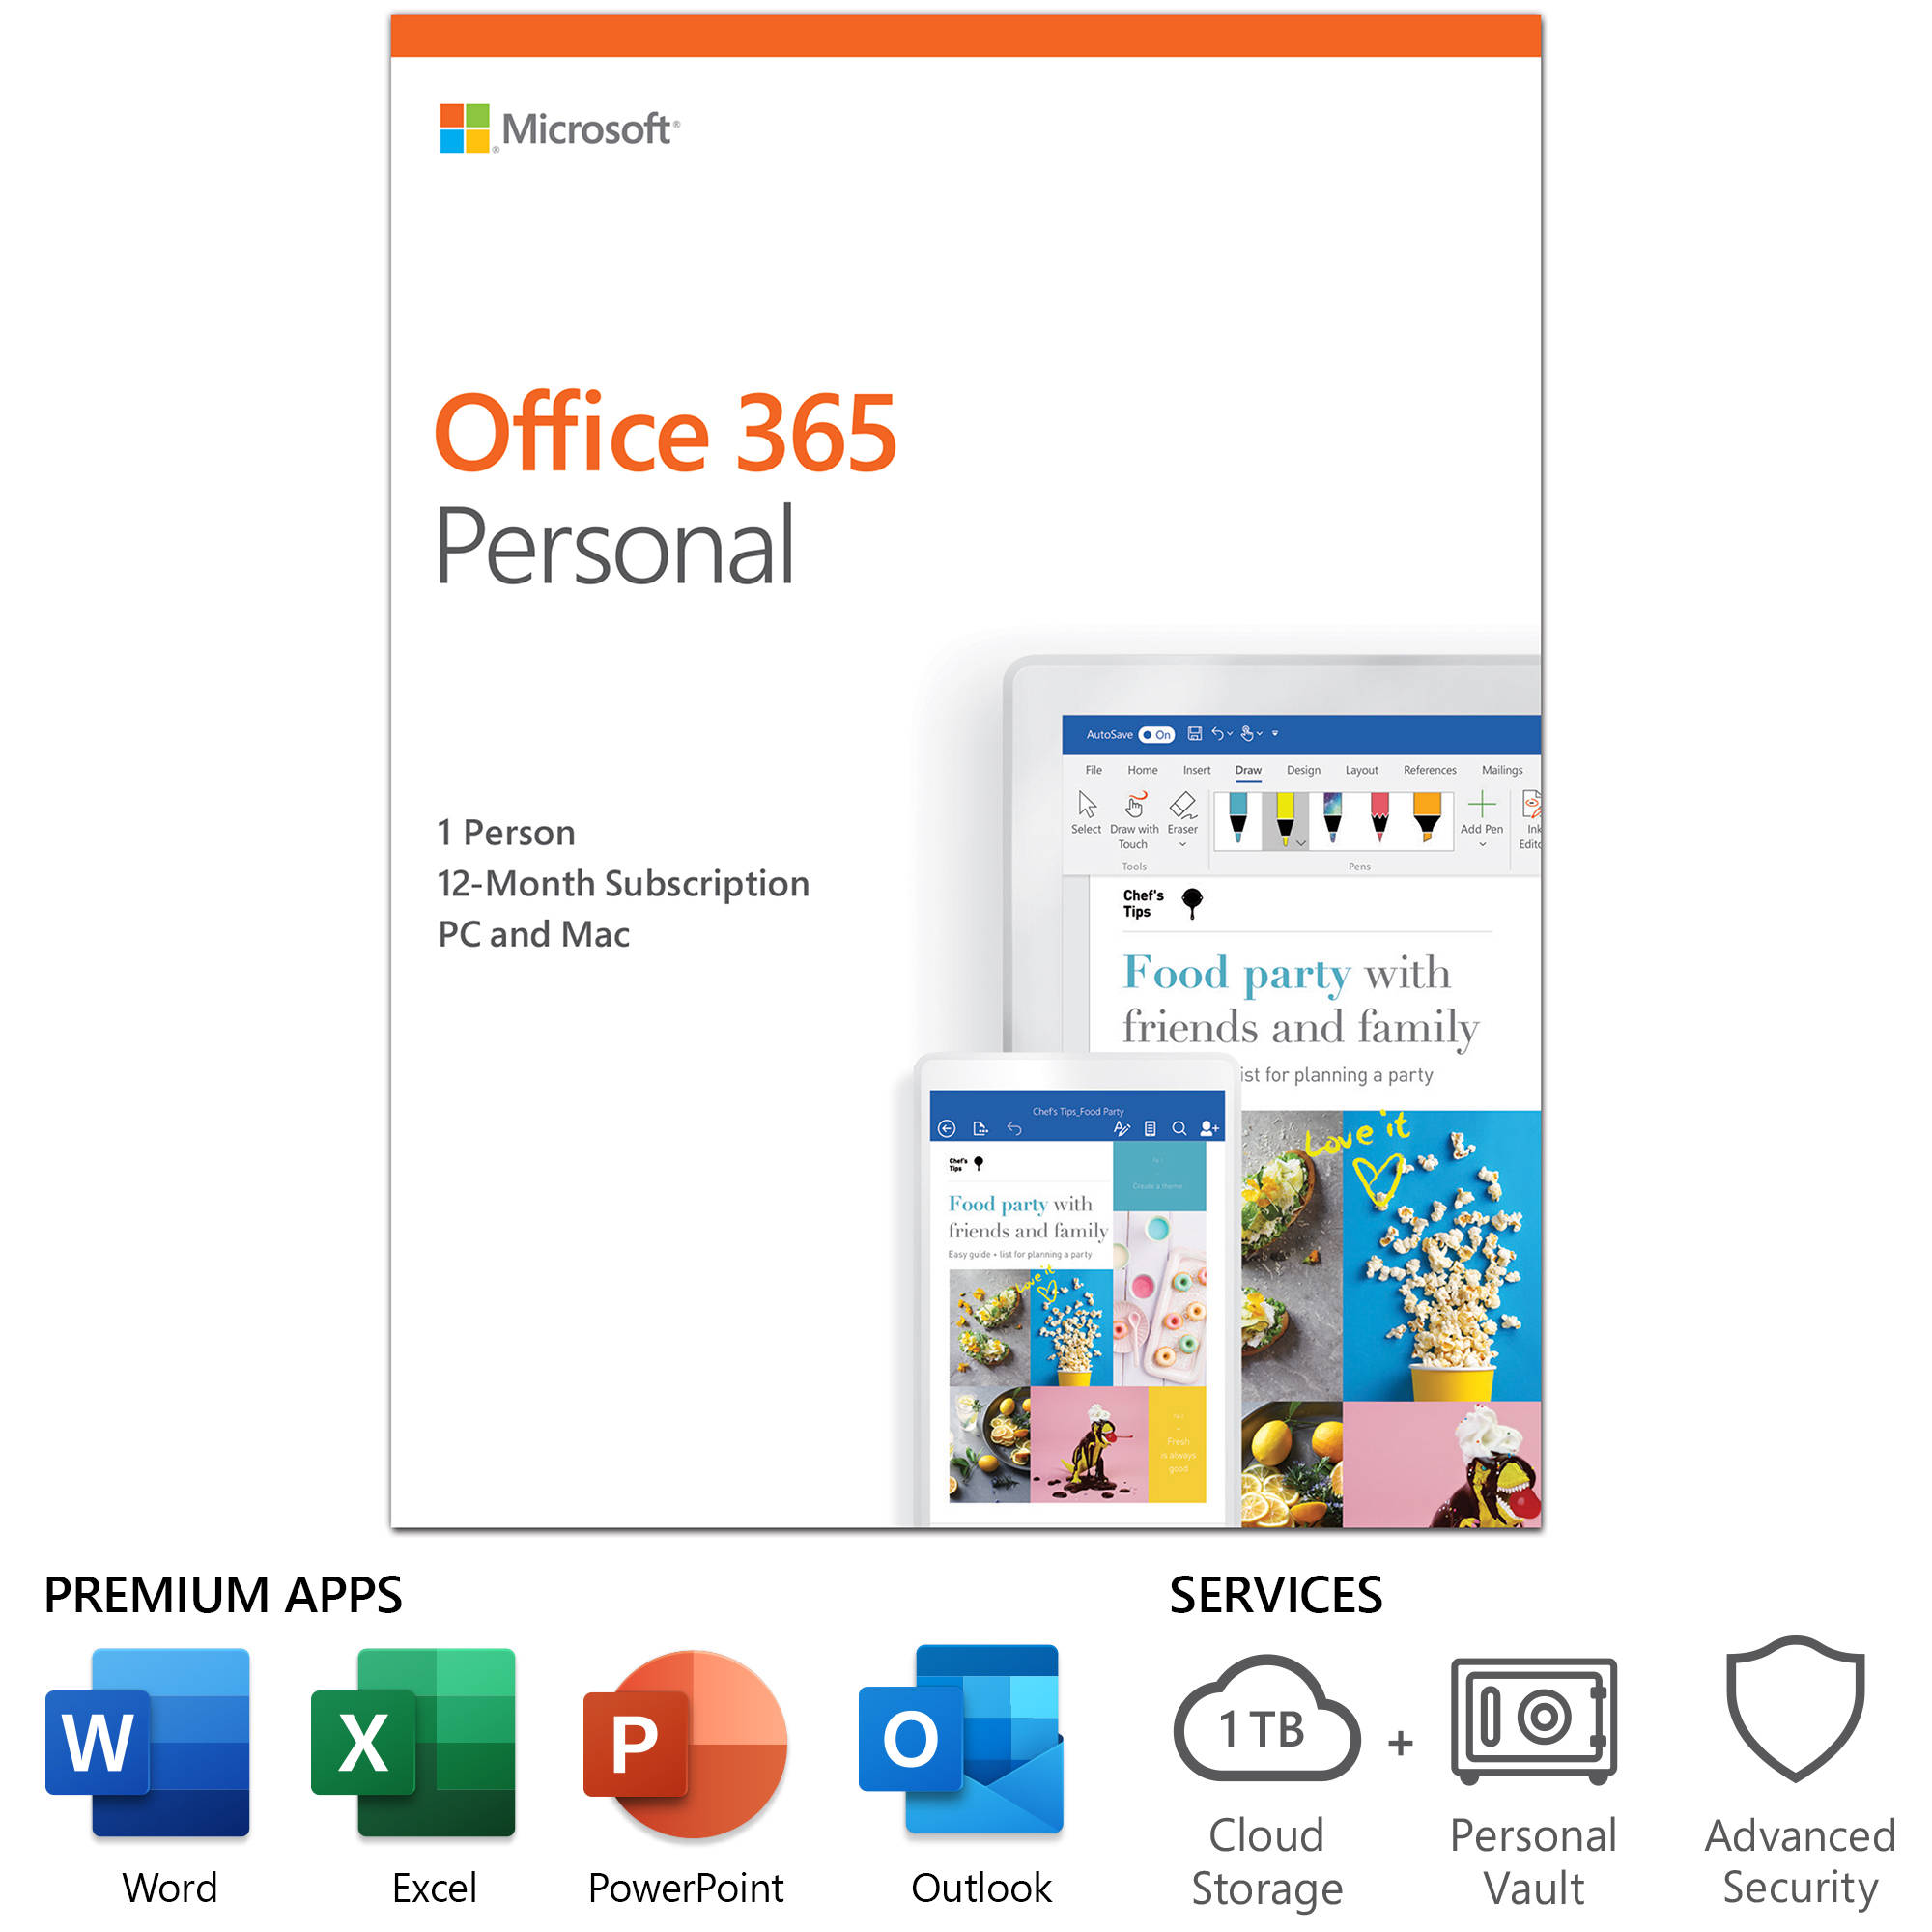 Microsoft Office 365 Personal 1 User License 12 Month Subscription Product Key Code